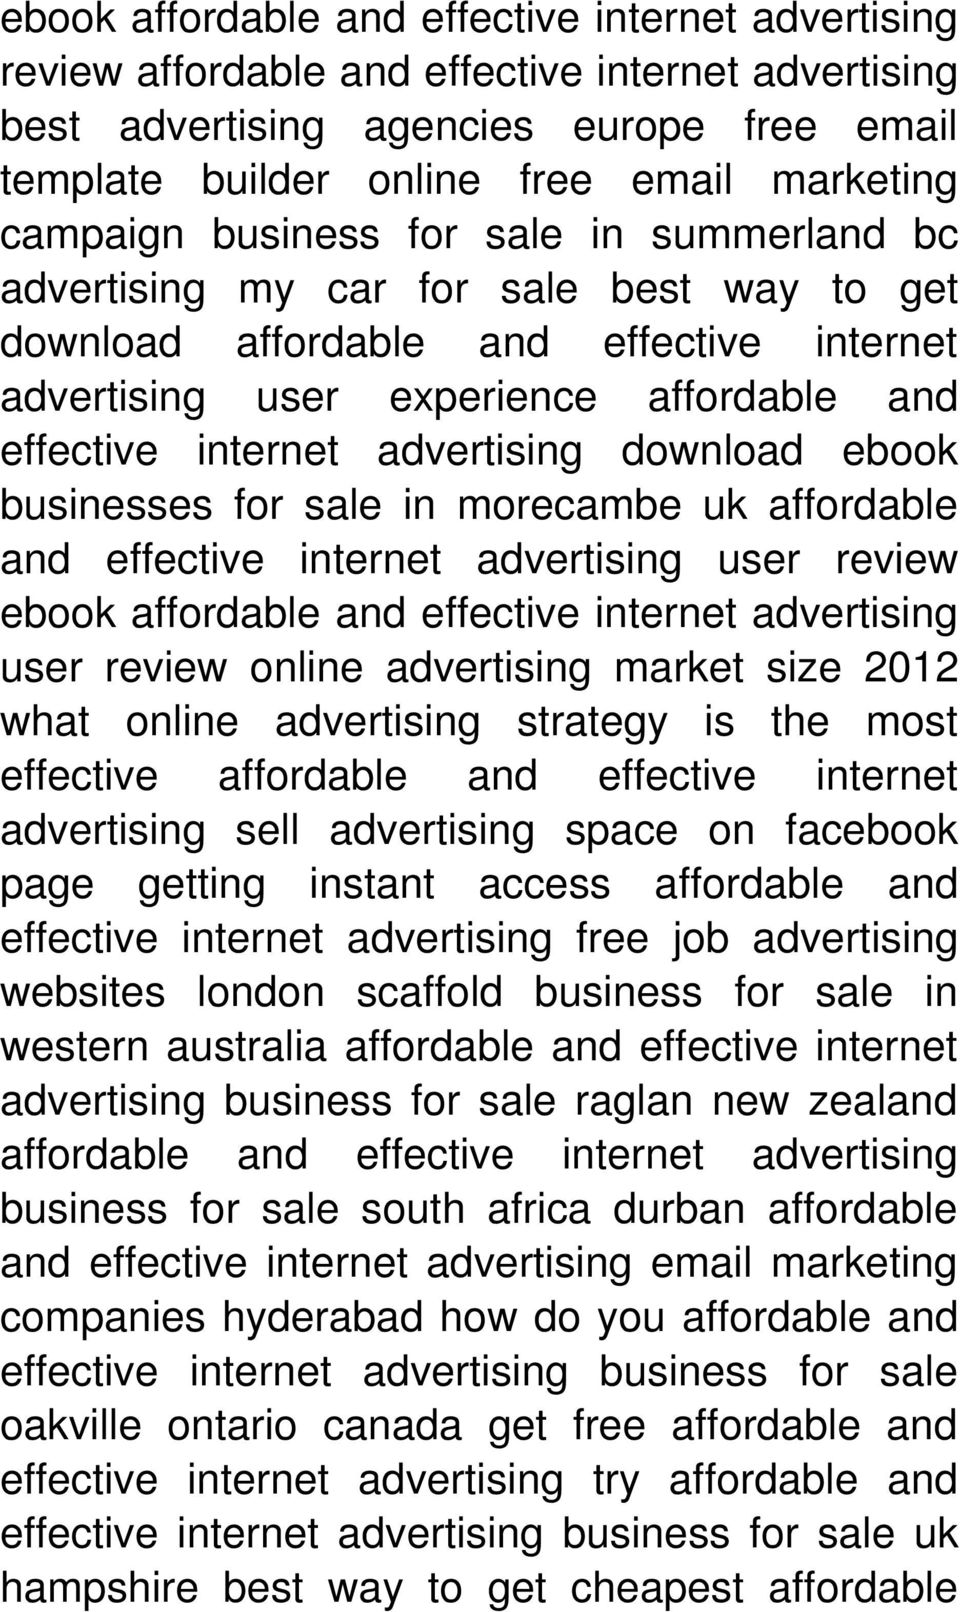 advertising user review ebook user review online advertising market size 2012 what online advertising strategy is the most effective affordable and effective internet advertising sell advertising